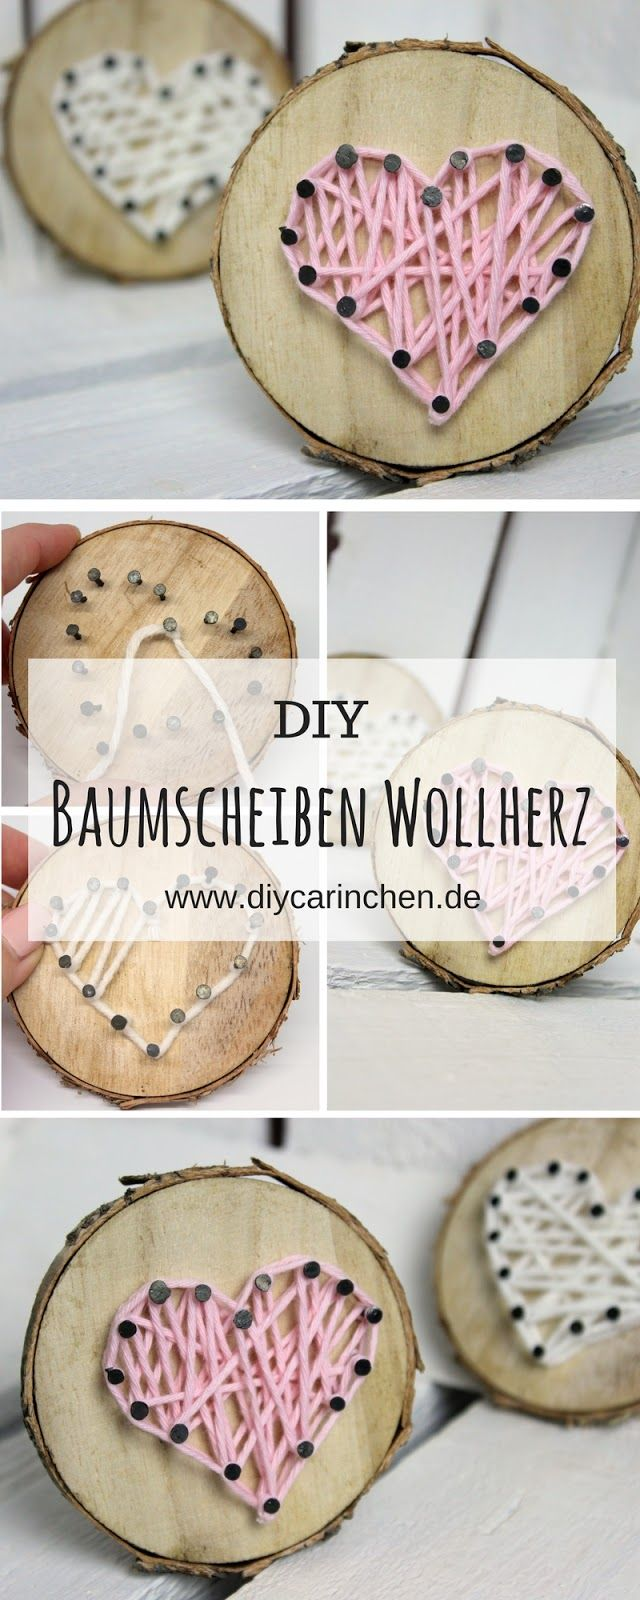 diy s es geschenk zum valentinstag baumscheibe mit herz in string art diys craft and diy. Black Bedroom Furniture Sets. Home Design Ideas